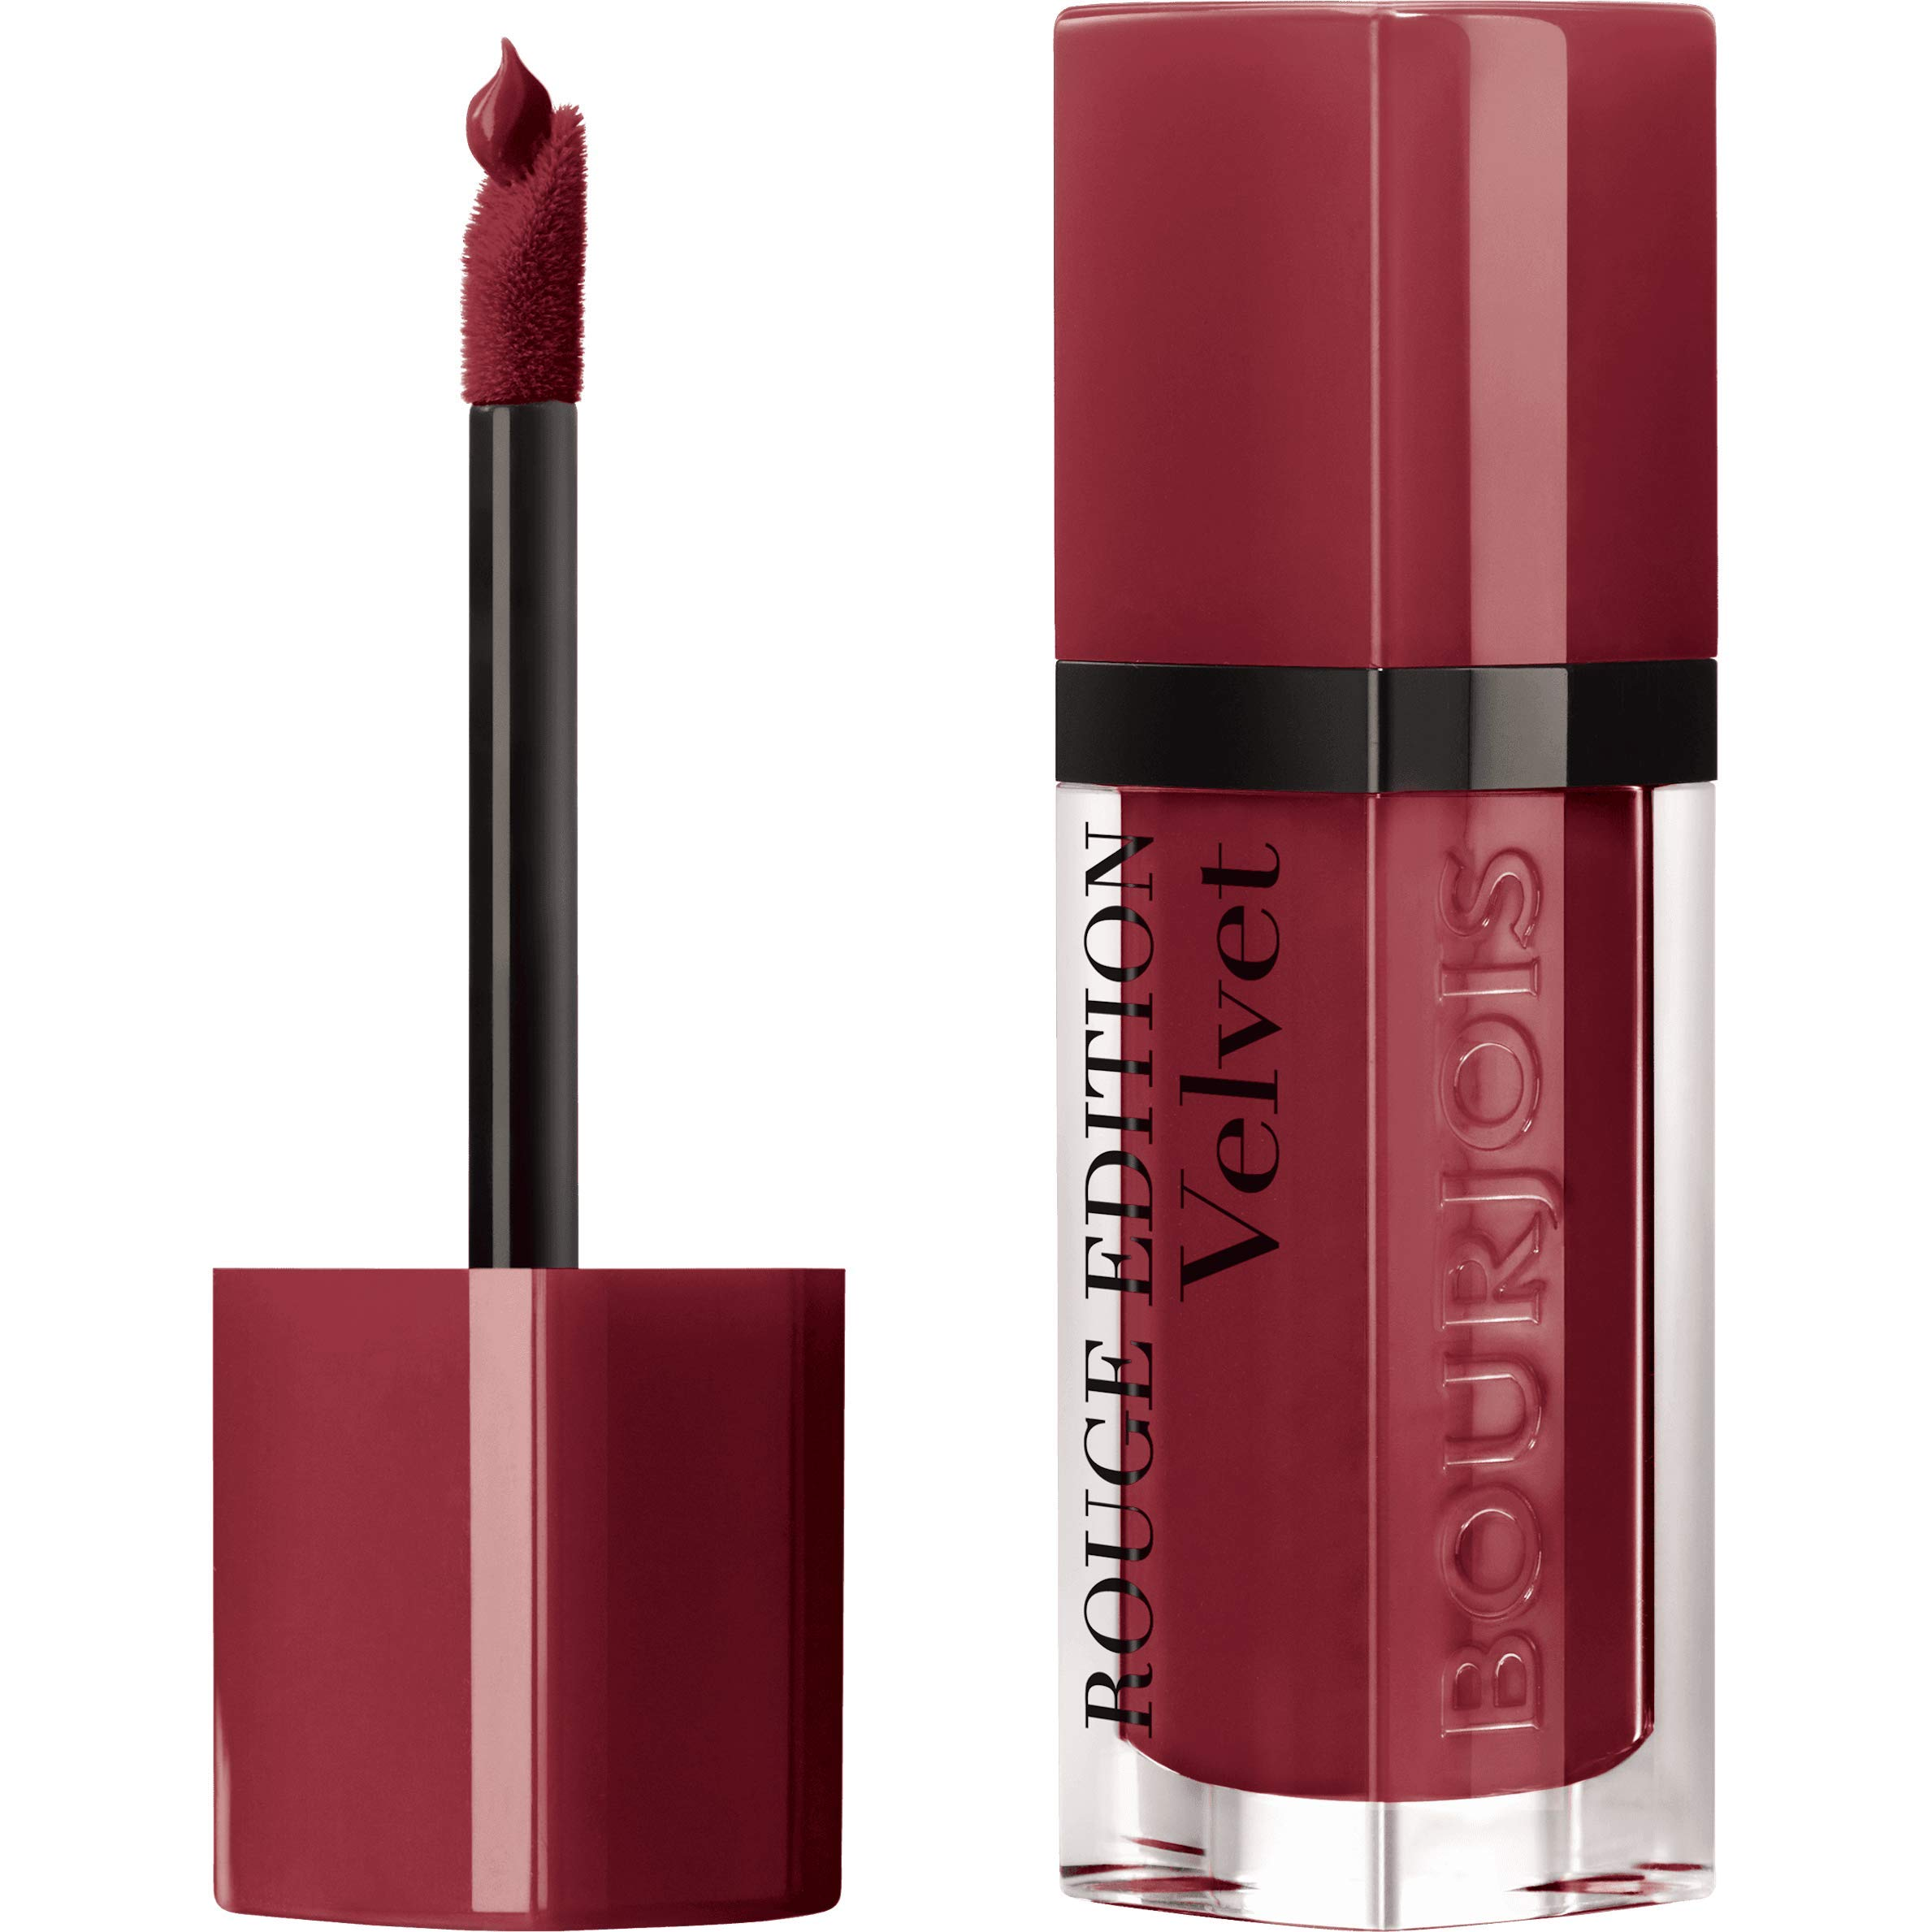 Bourjois - Rouge Edition Velvet